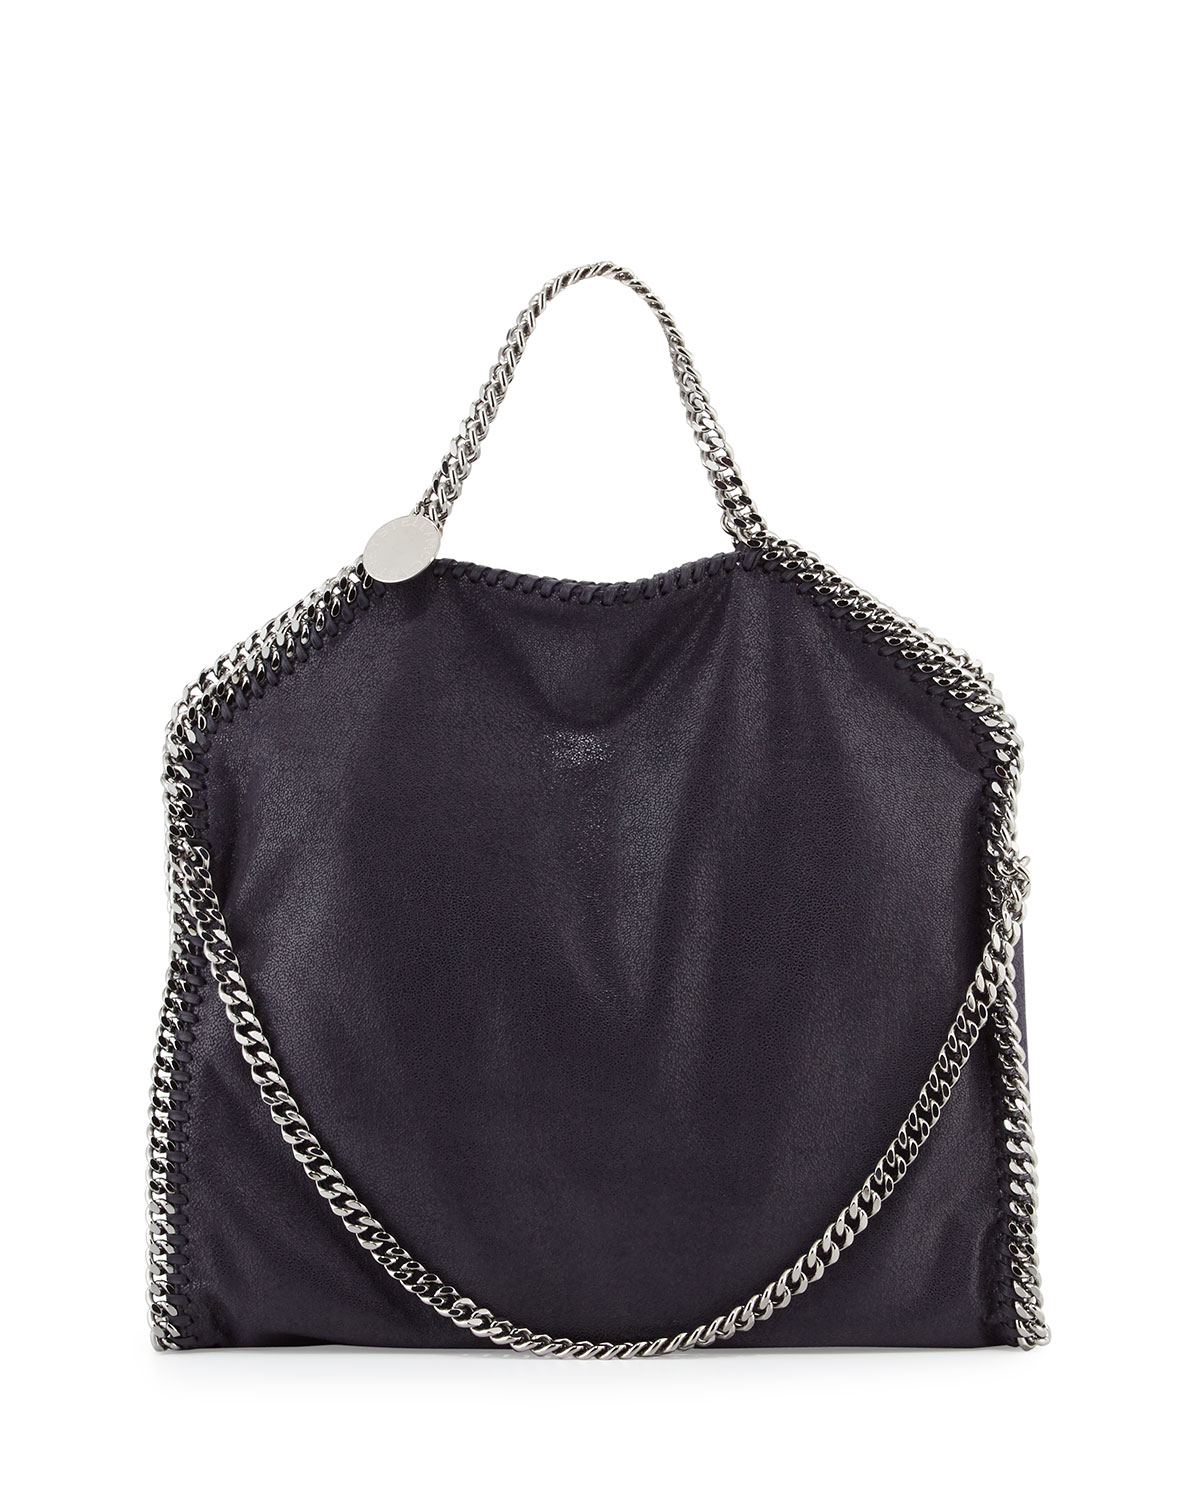 78a9607e67 Stella McCartney Falabella Fold-Over Tote Bag